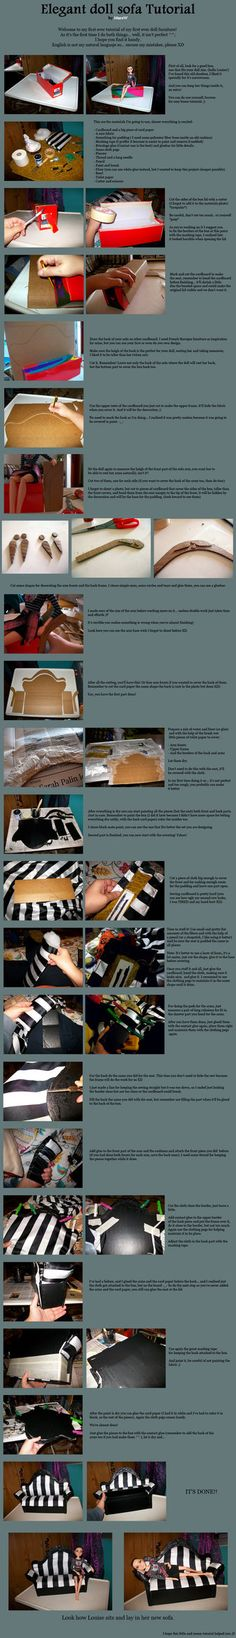 Elegant doll sofa tutorial by MarsW. Found this in a site I like. However those of you that do may find it interesting and something cool to do. The blonde in pic. Monster High Dollhouse, Monster High House, Monster High Dolls, Cardboard Dollhouse, Diy Dollhouse, Dollhouse Miniatures, Barbie Doll House, Barbie Dolls, Dollhouse Tutorials